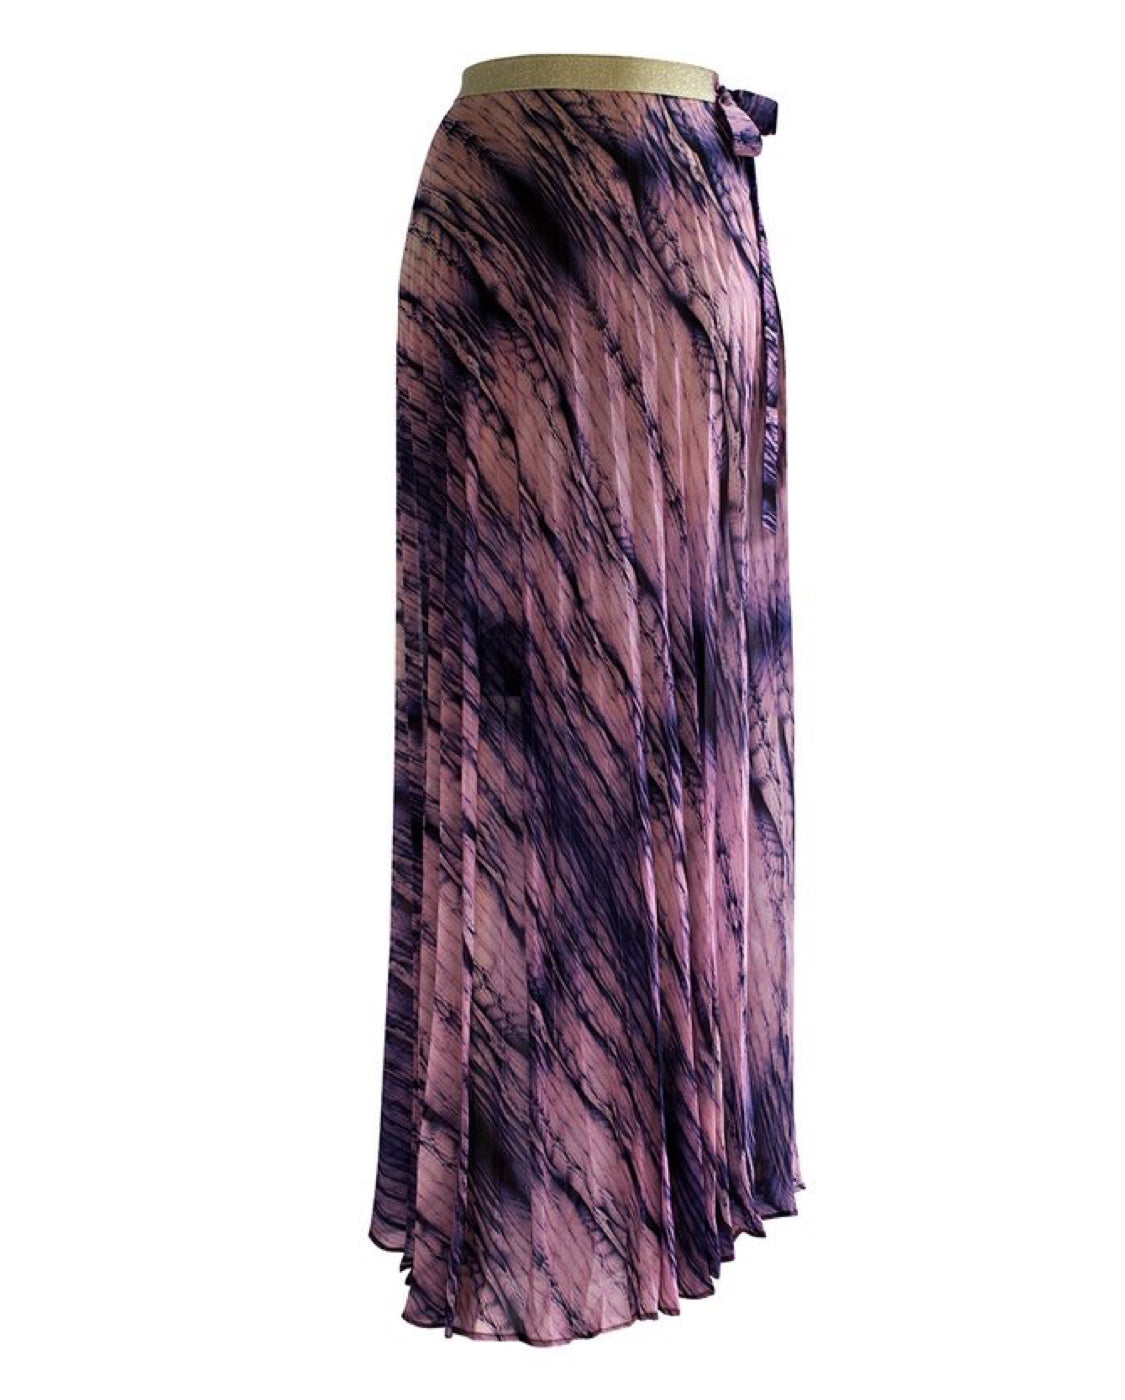 Dreamcatcher Pleated Maxi Skirt - Feather Boa - by West Seventy Nine